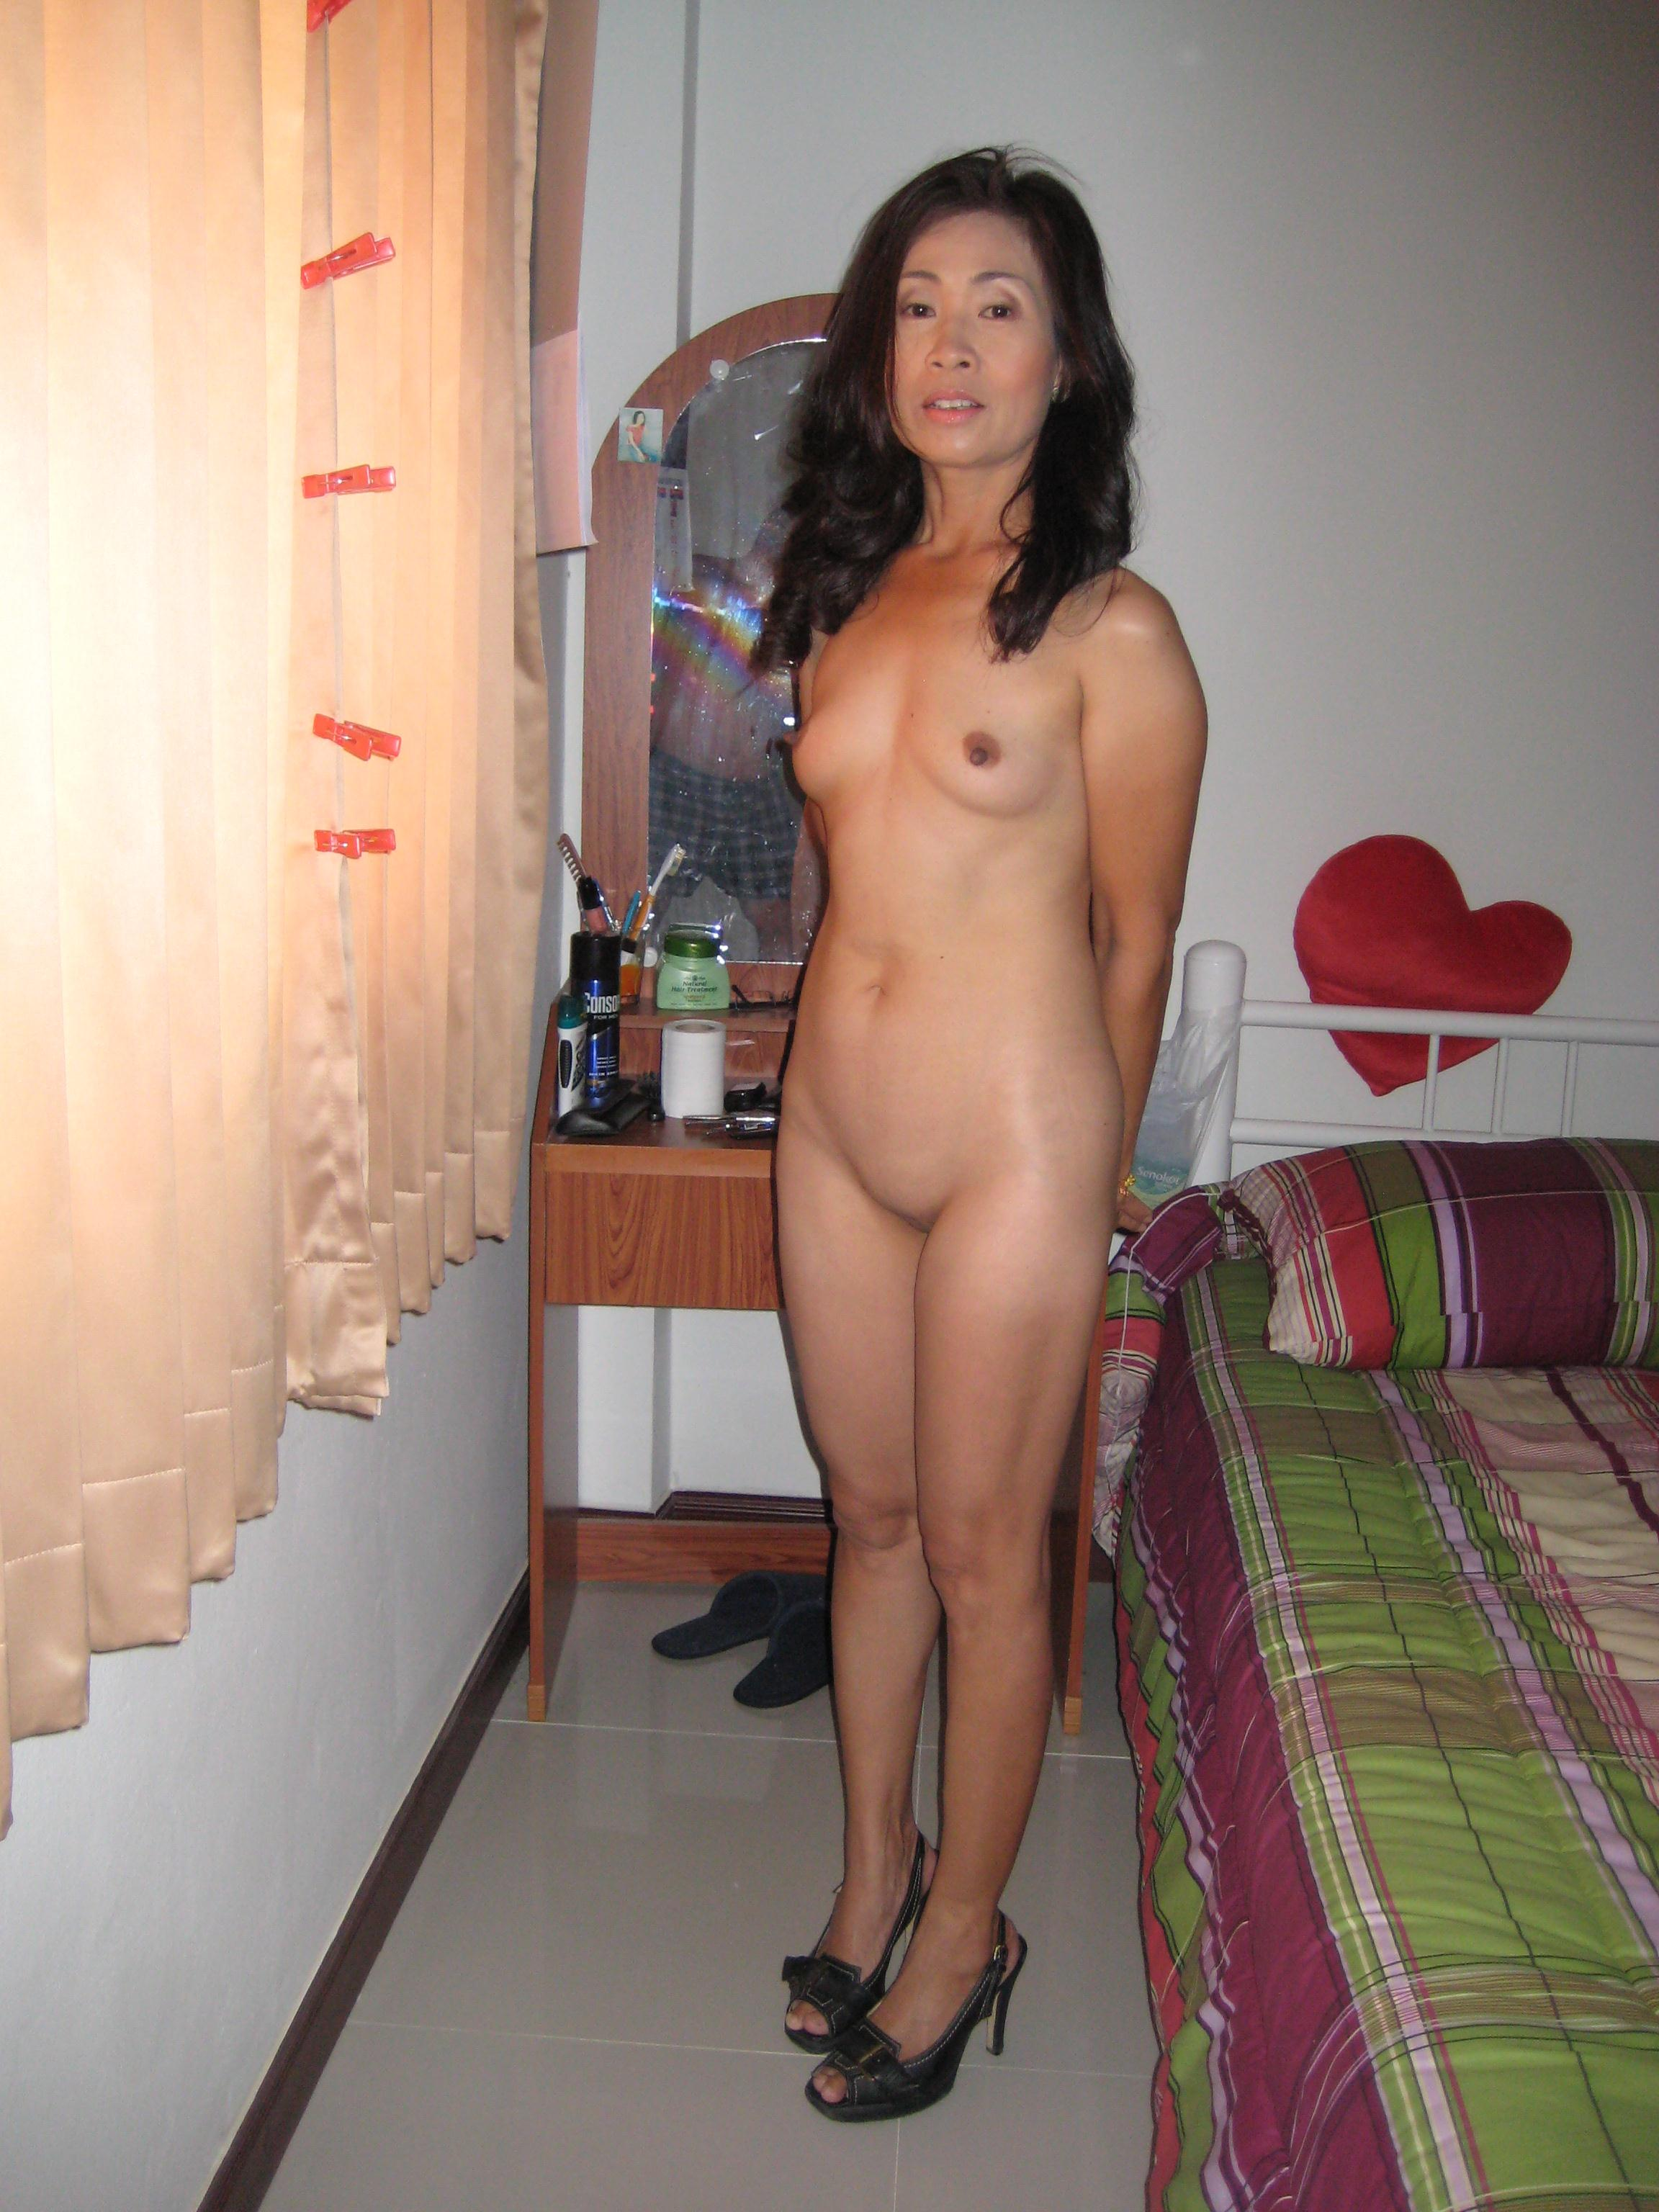 Concurrence free homemade wife pictures xxx confirm. was